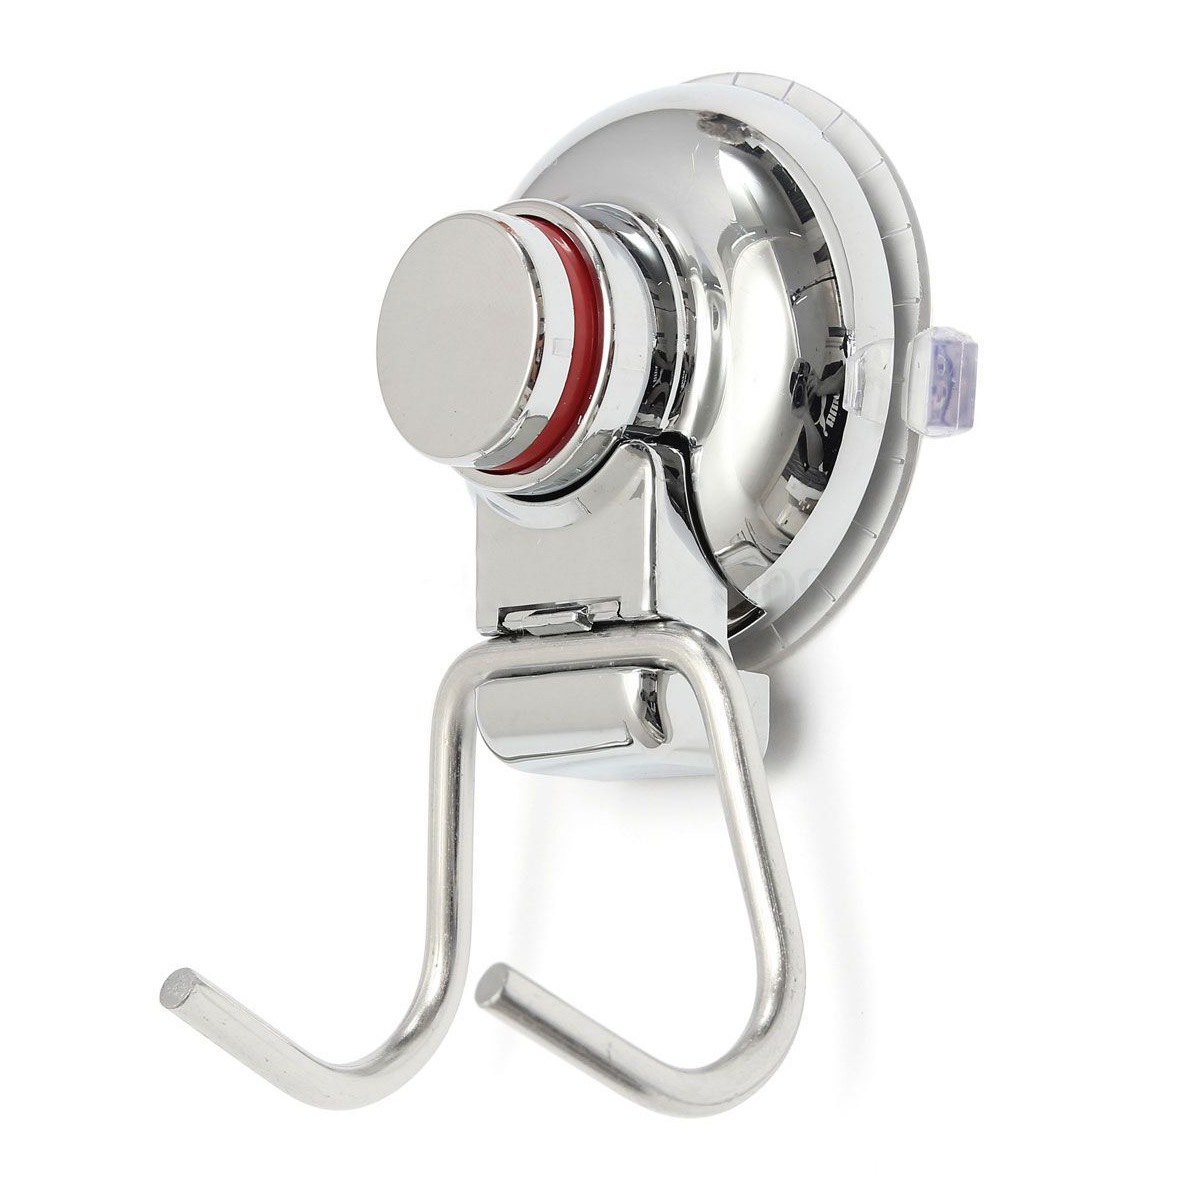 Bathroom Kitchen Stainless Steel Double Hook Strong Vacuum Suction Cup Hanger SilverBathroom Kitchen Stainless Steel Double Hook Strong Vacuum Suction Cup Hanger Silver